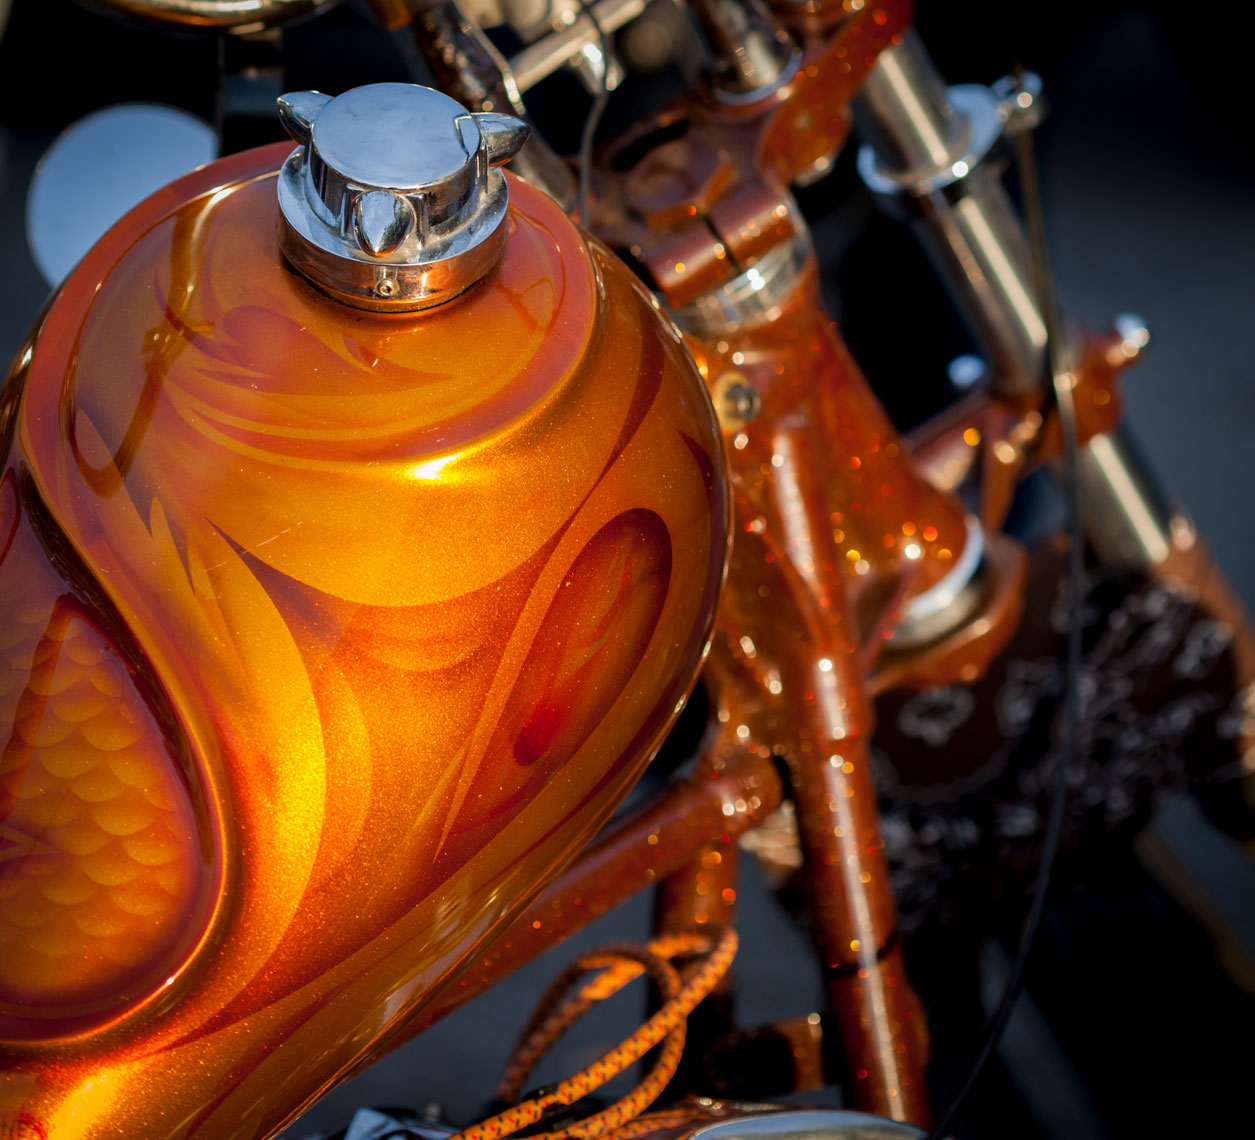 22 Location Photogrphay Custom Motorcycle Builderes Denver Colorado FTW Gold Sparkle Gas Tank